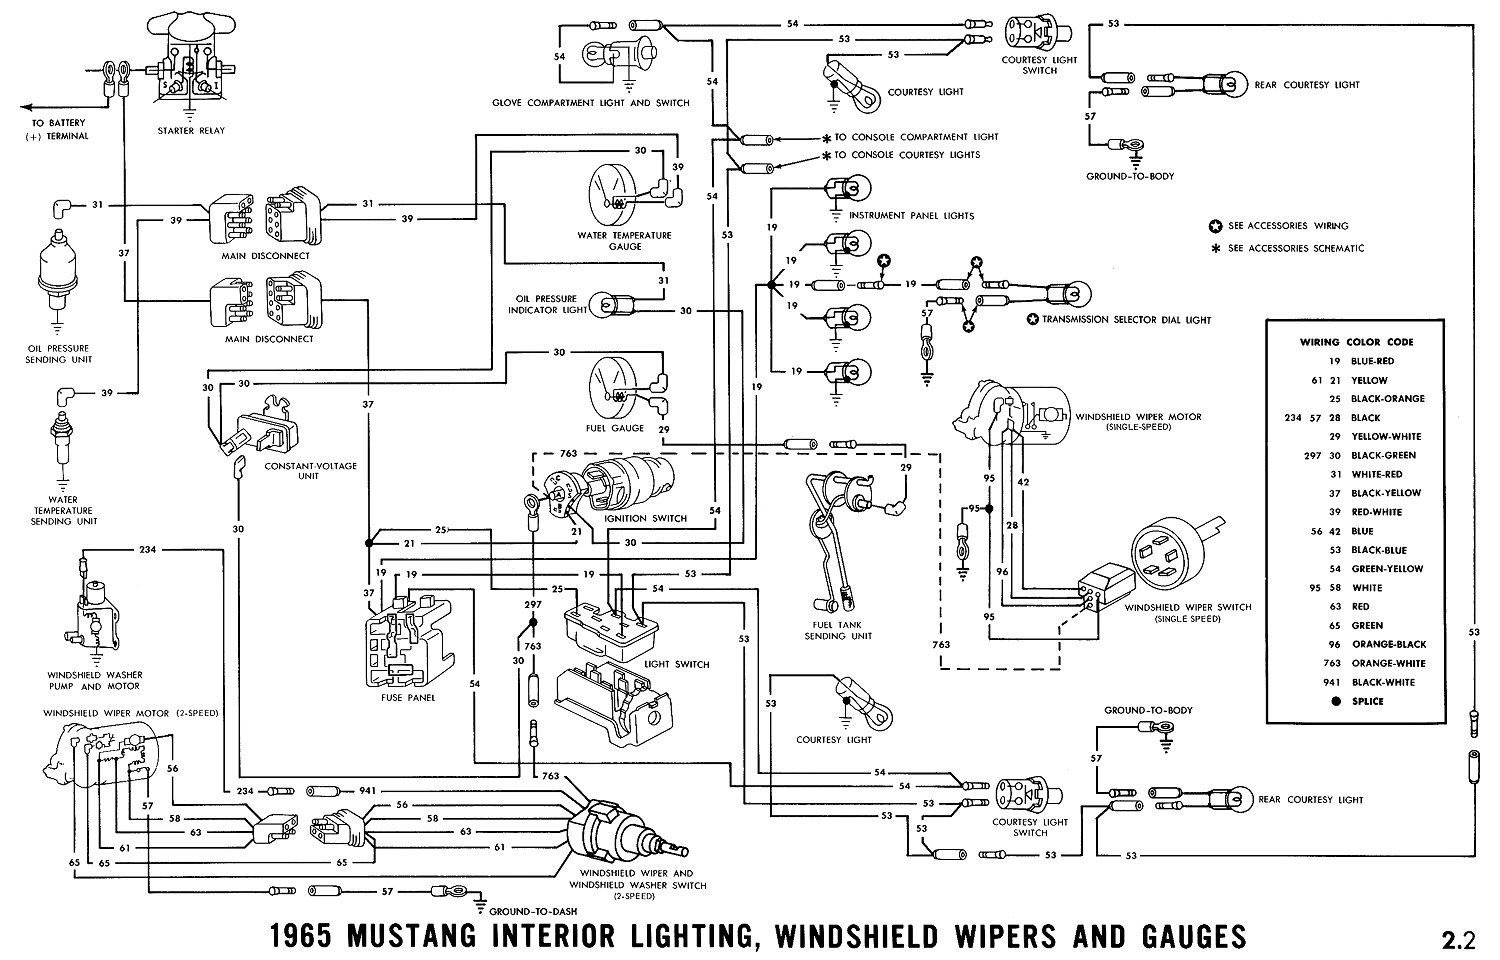 1951 Ford Ignition Switch Wiring Diagram Printable Wiring Diagram